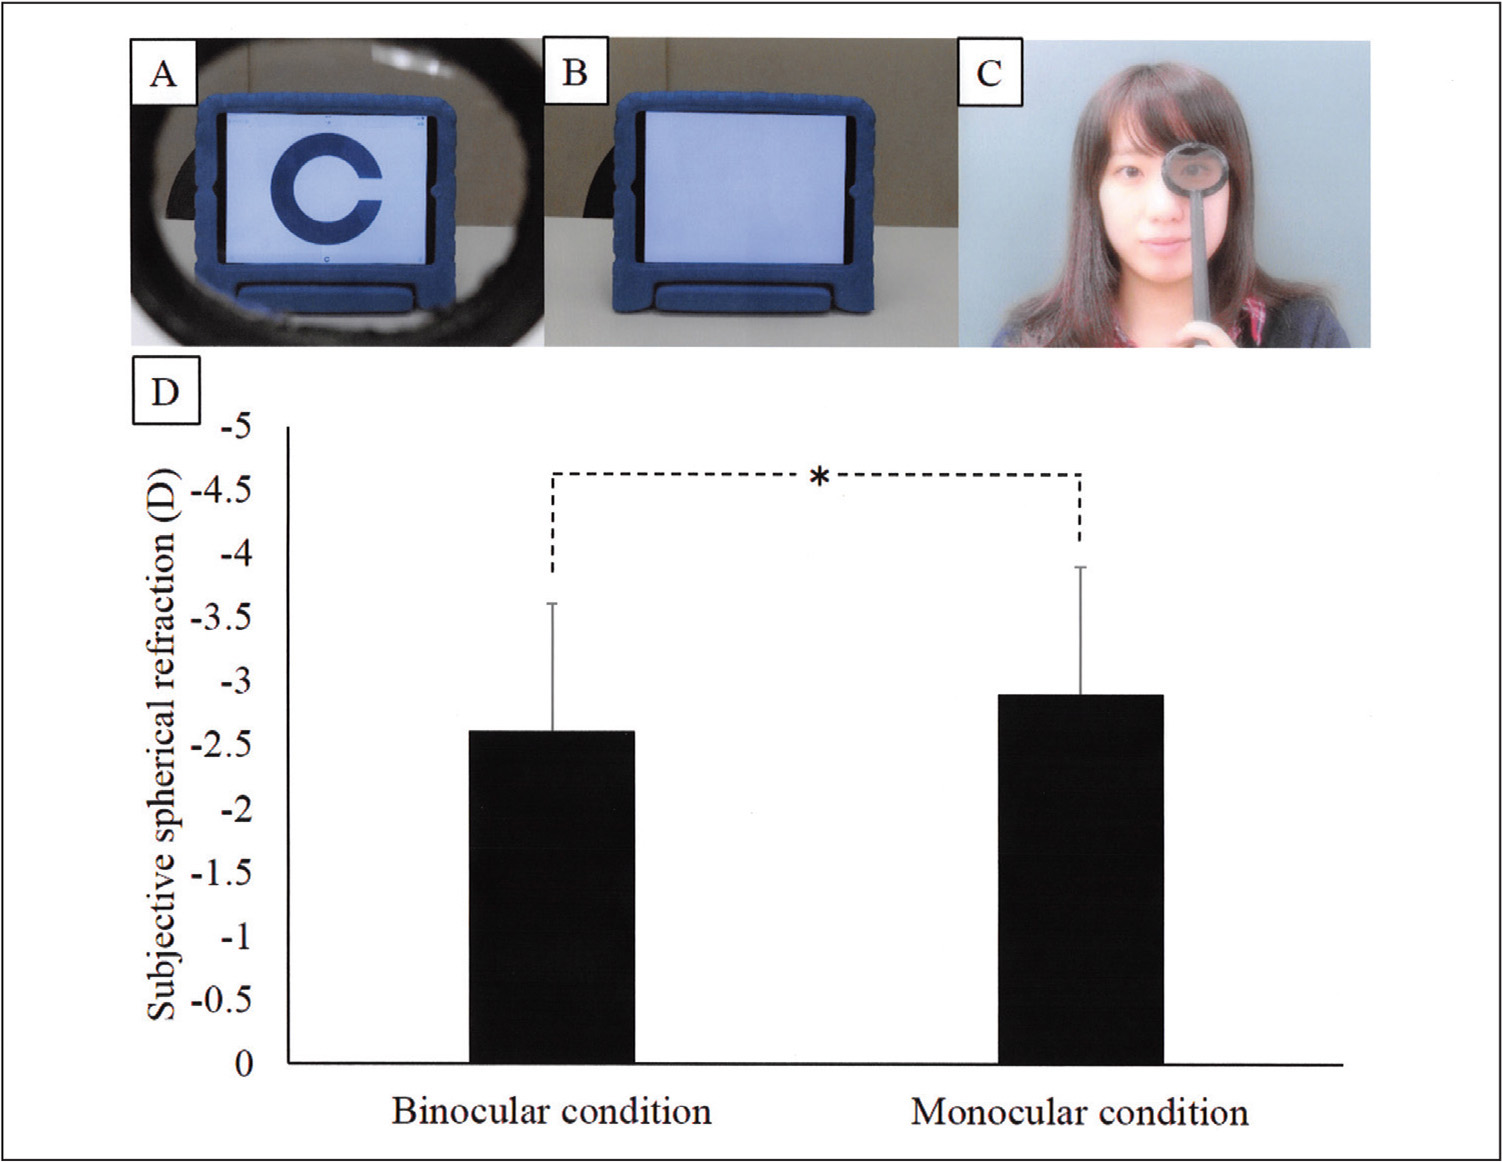 New concept binocular visual acuity test (Occlupad; Japan Focus Co., Ltd., Tokyo, Japan). The polarizing lens designed for viewing the device (A) was made with a white screen displayed to the untested eye and (B) the Landolt-C chart was displayed only to the tested eye. (C) A difference of subjective spherical refraction between binocular open-viewing and monocular viewing condition. (D) The subjective spherical refraction values are from a right eye. *P < .001 (Wilcoxon signed rank sum test).